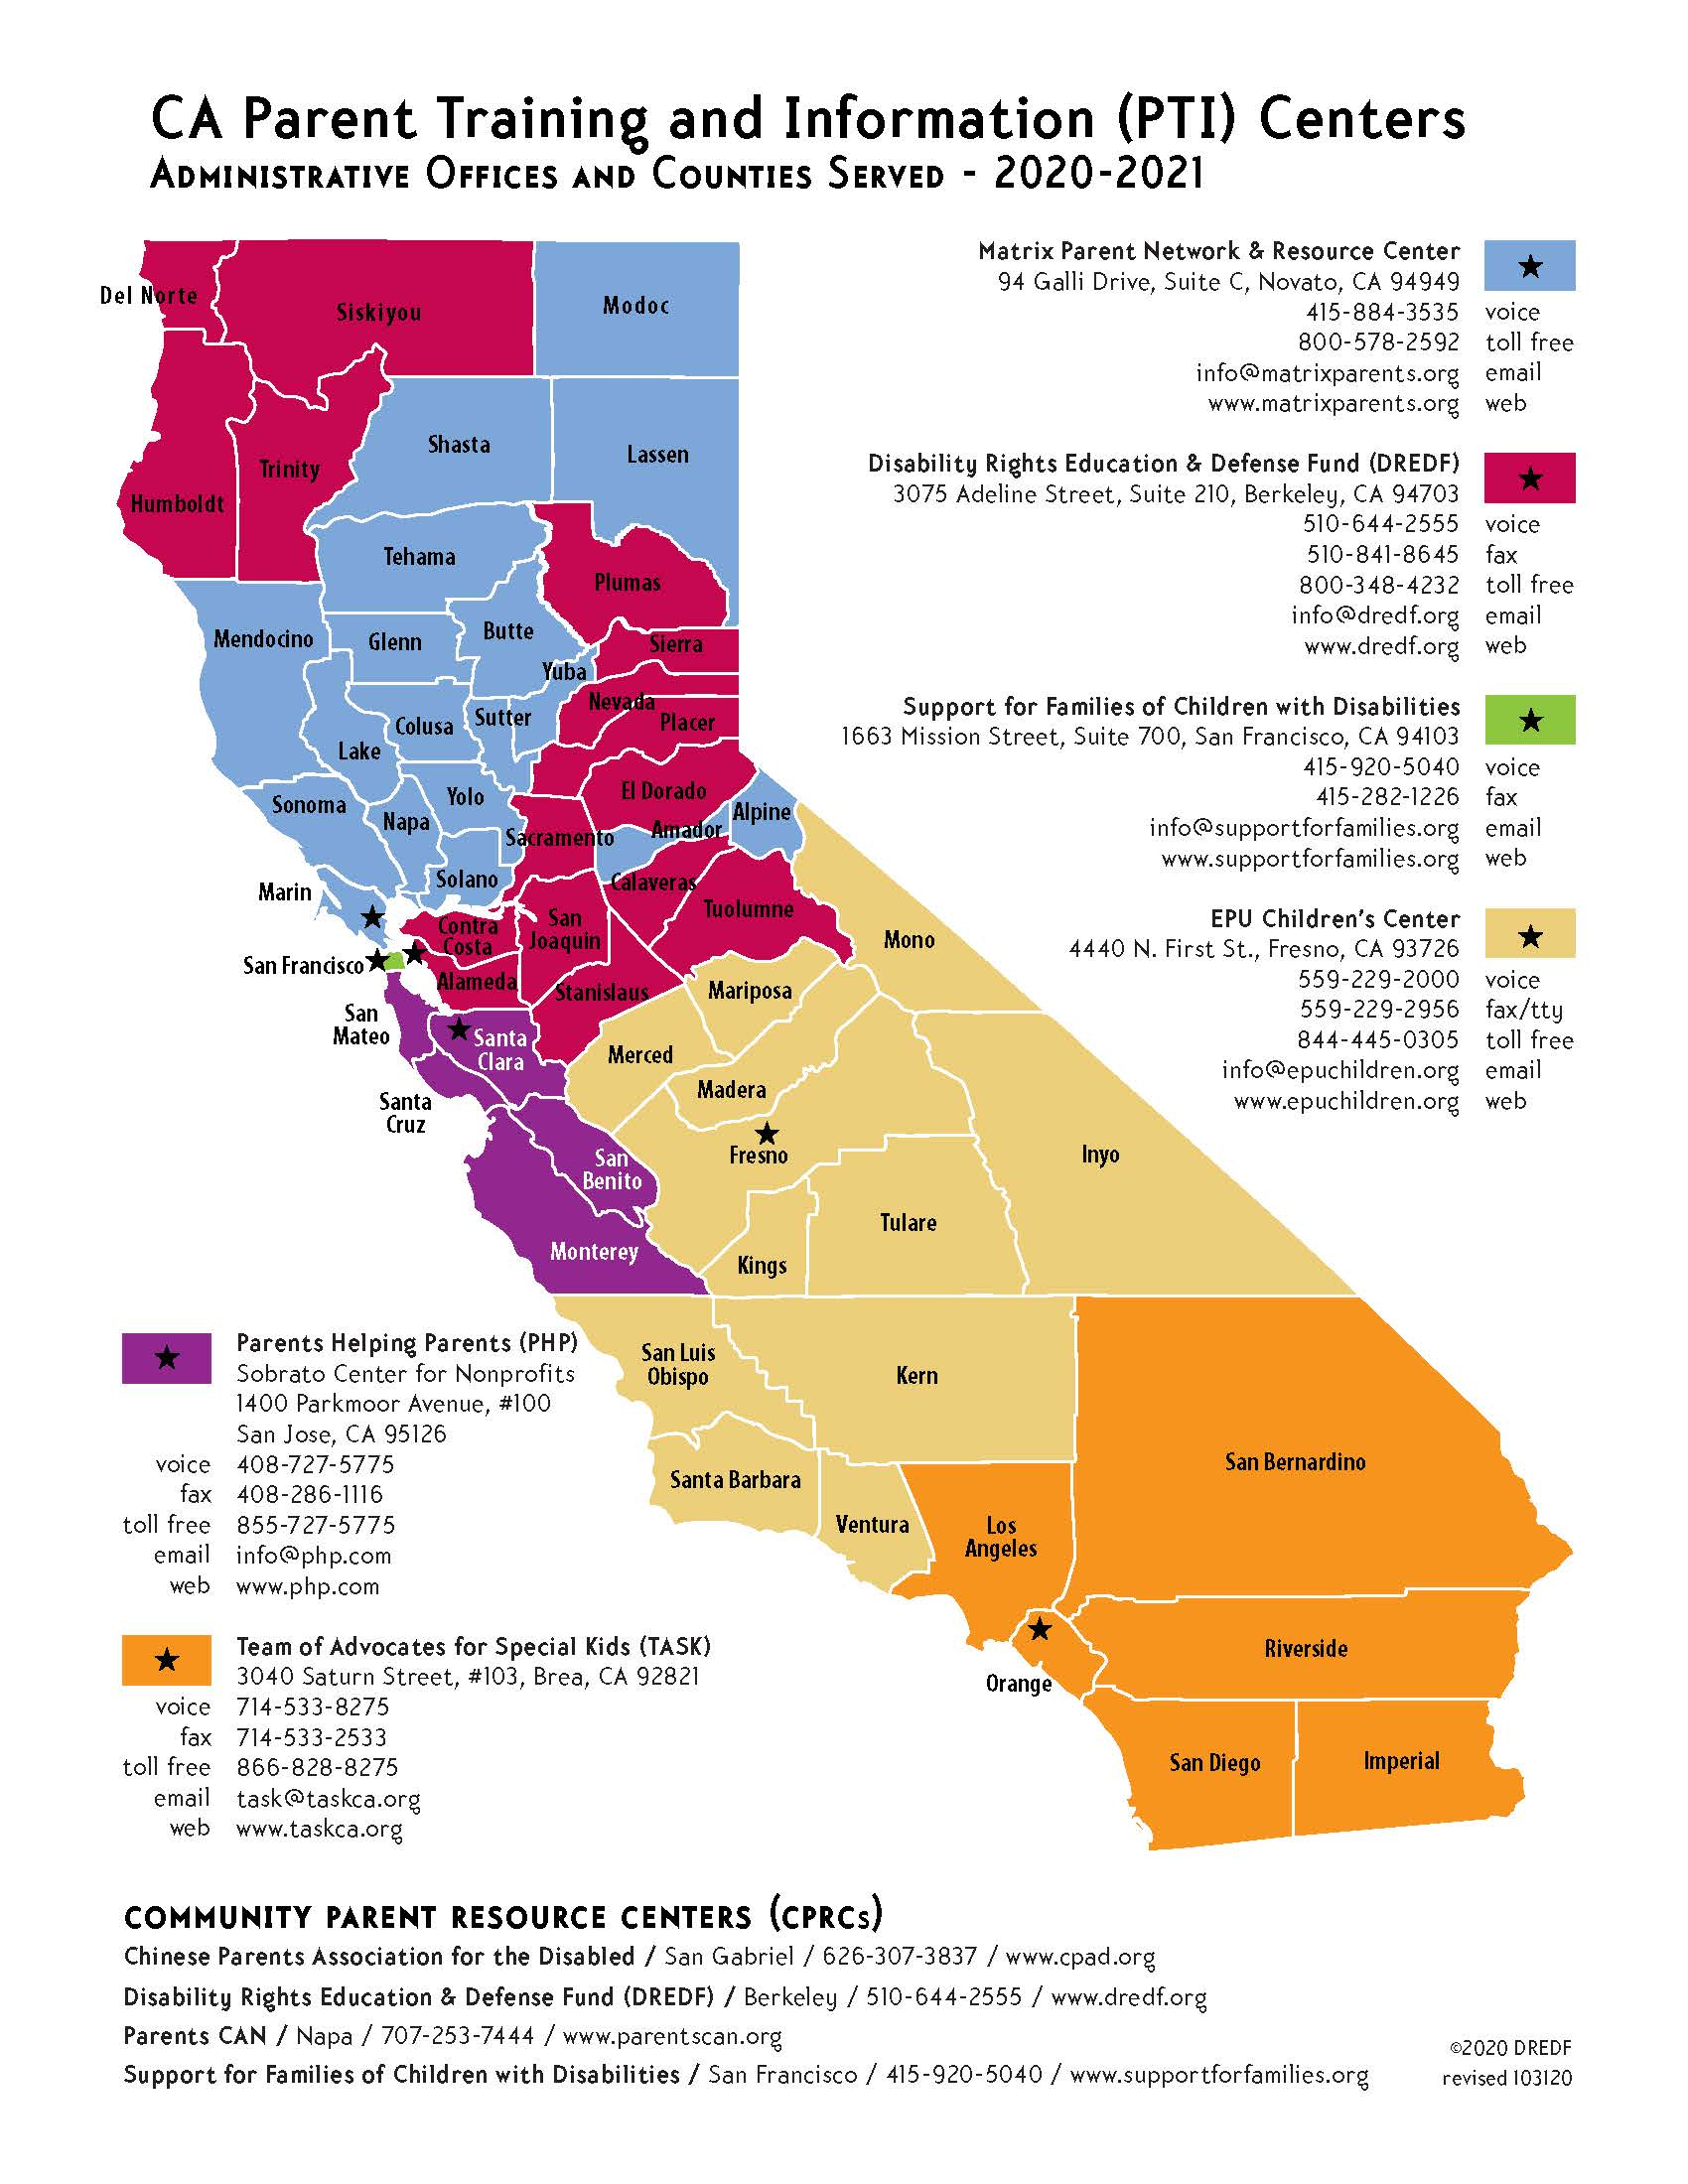 Image shows map of California with county regions assigned to parent centers. Information is also provided in text in the other fields on this page.